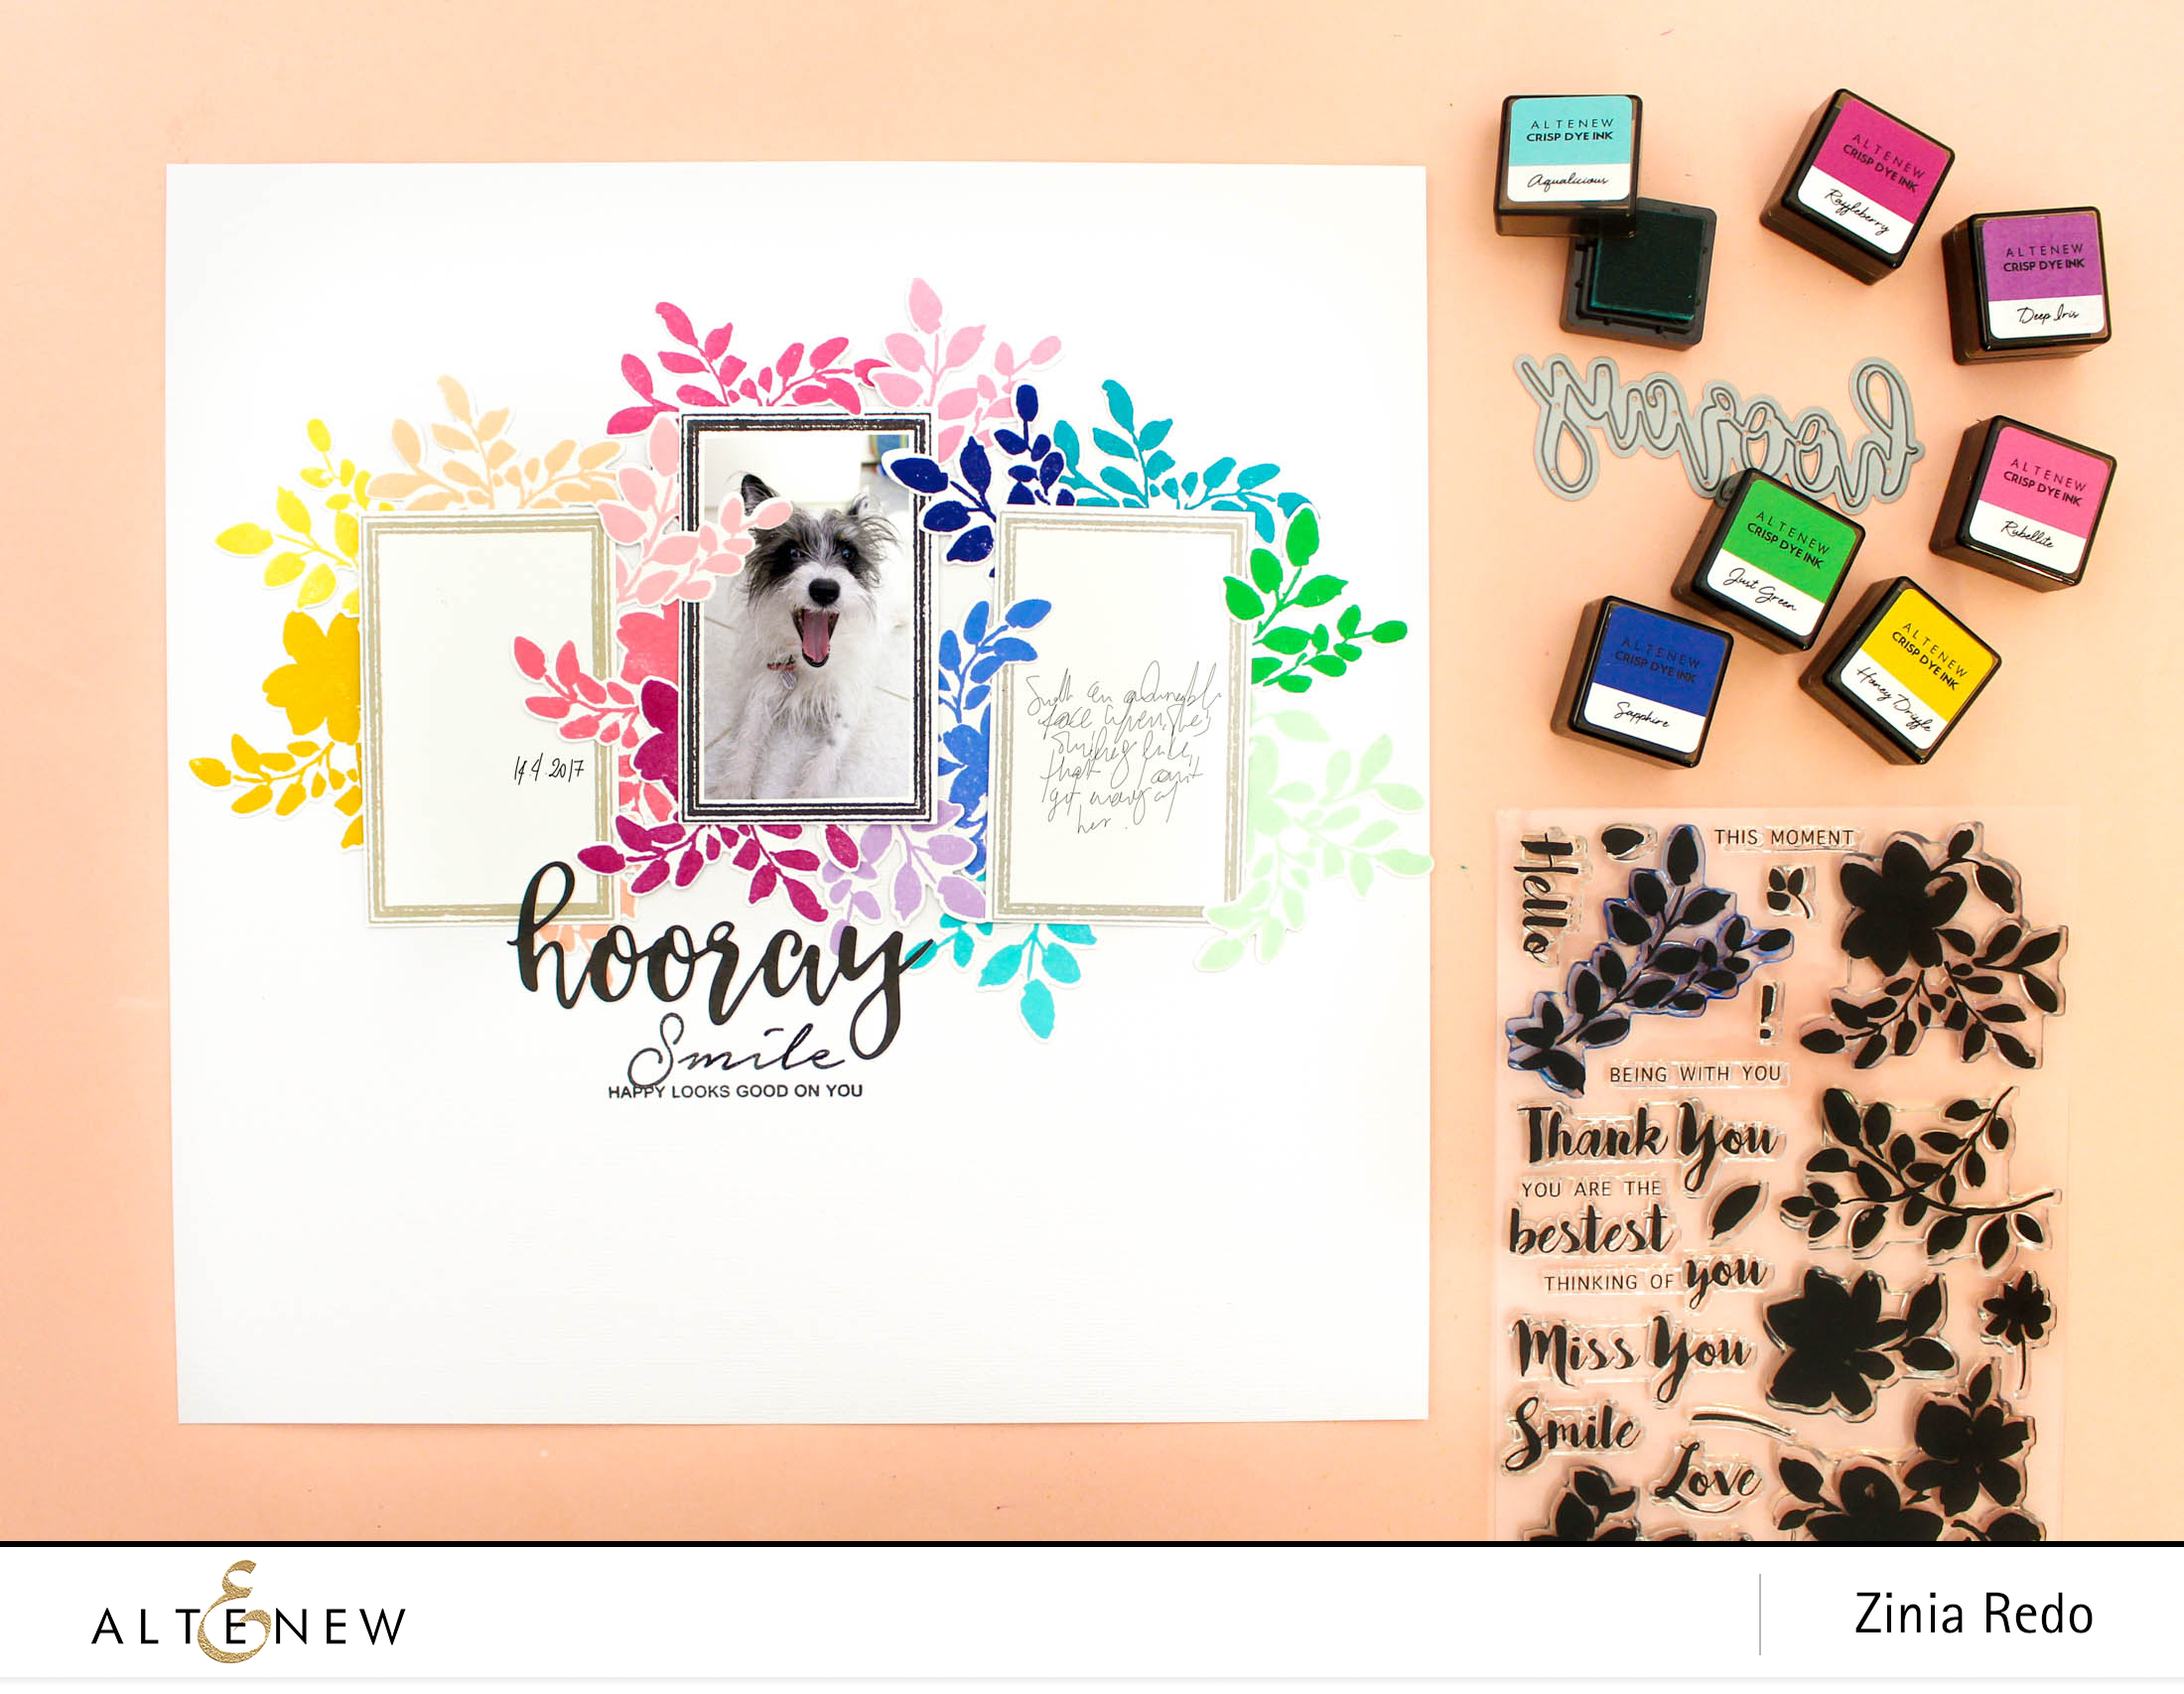 Video: Rainbow Floral Frames Layout @altenewllc @ziniaredo #altenew #ziniaredo #scrapbooking #scrapbook #stamping